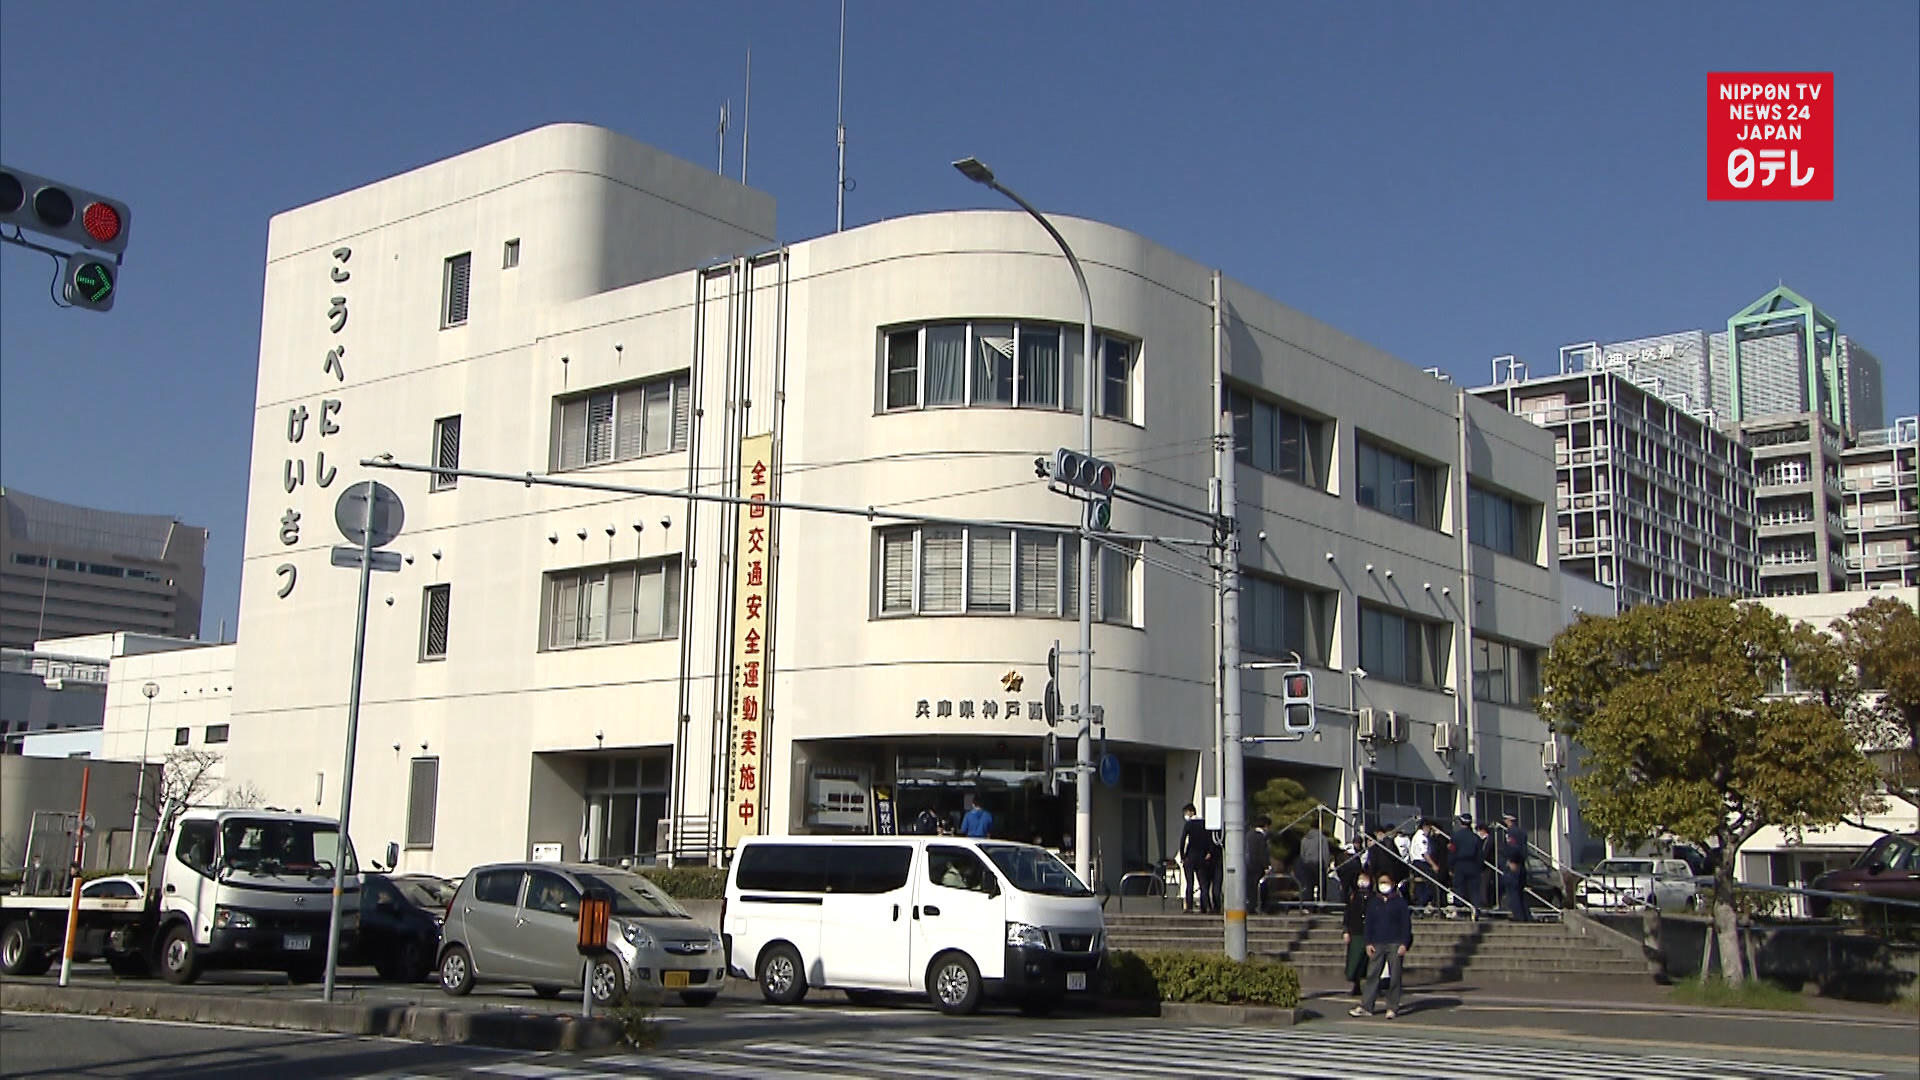 Police station chief in Kobe infected with coronavirus after attending party